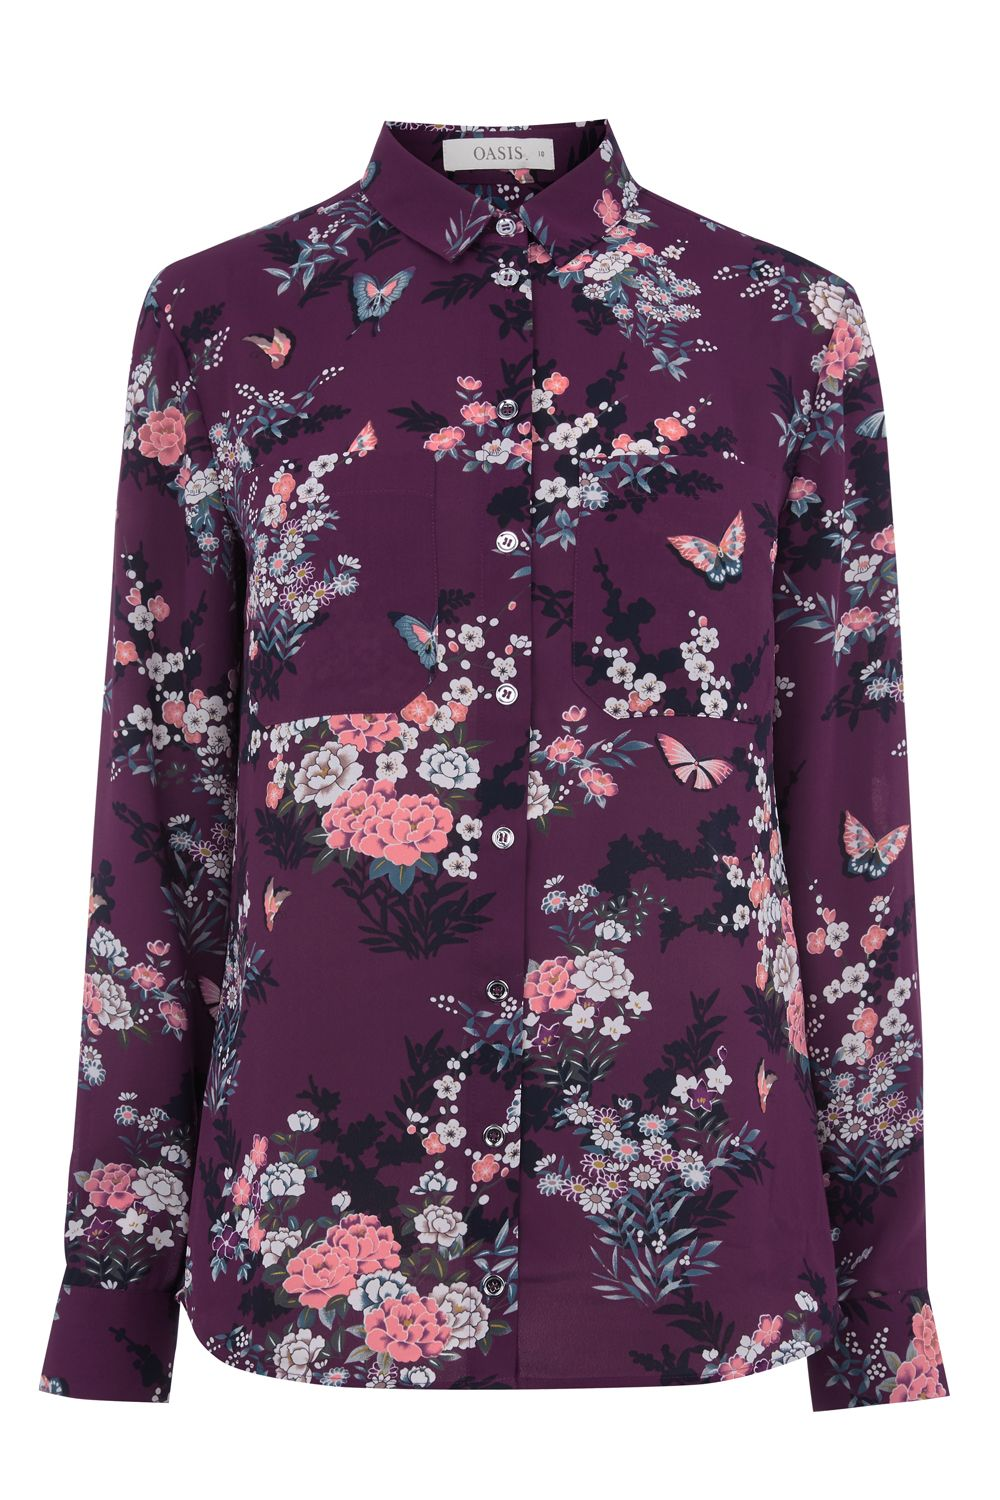 Oasis Kimono Shirt, Multi-Coloured